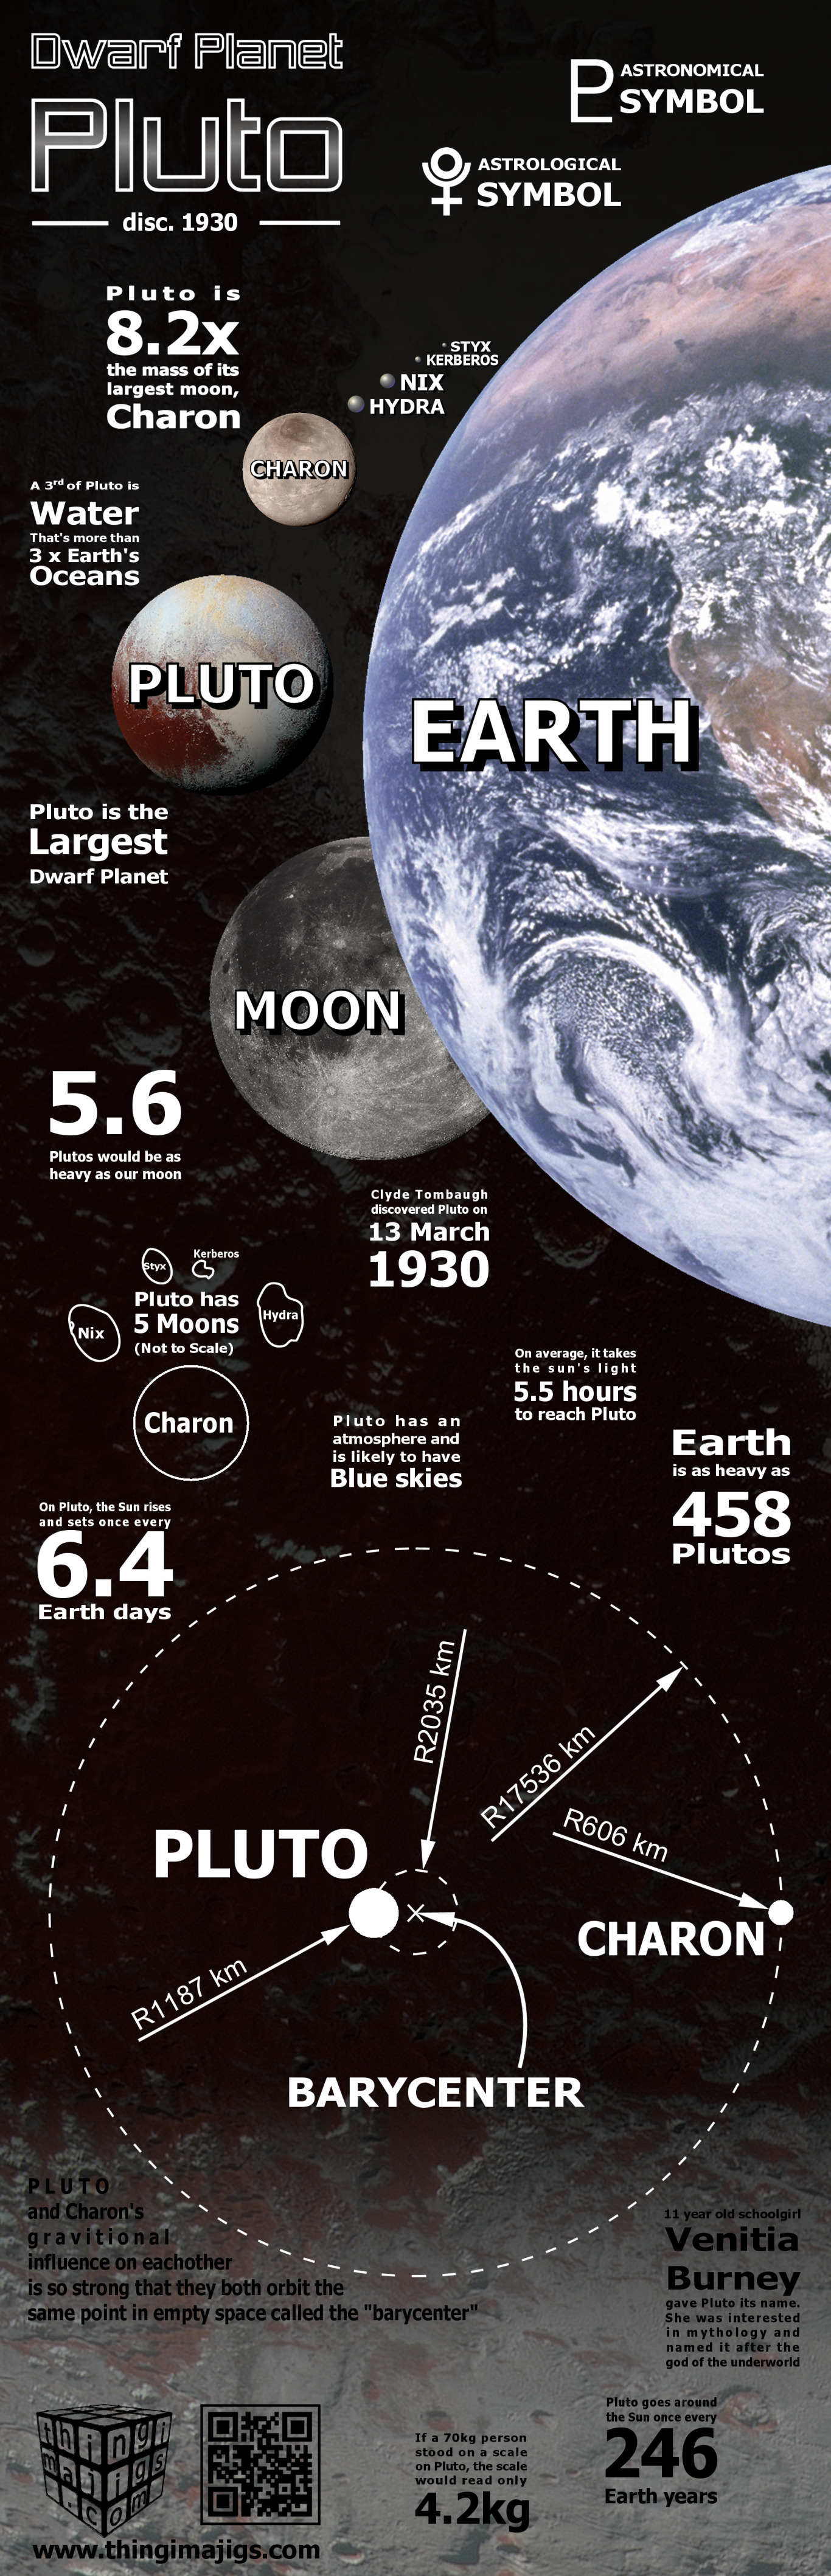 Thingimajigs.com celebrates the anniversary of Pluto discovery with a cool infographic - Lots of Pluto Facts!